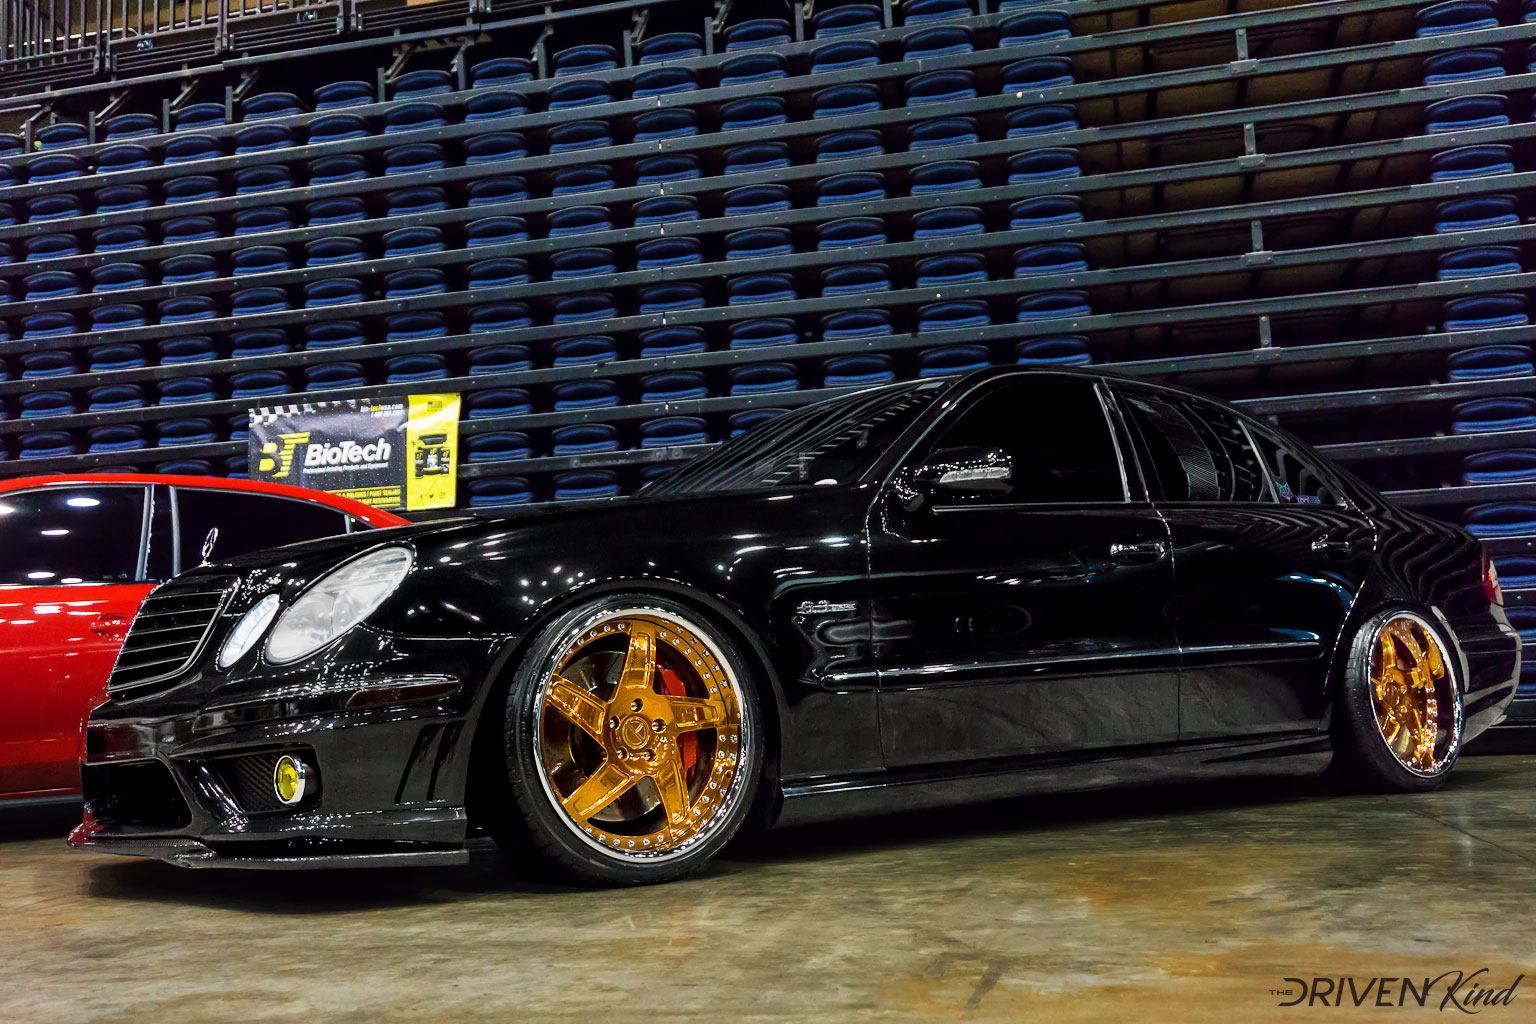 Mercedes Stance Tuner Evolution Car Show Coverage Daytona Beach by The Driven Kind